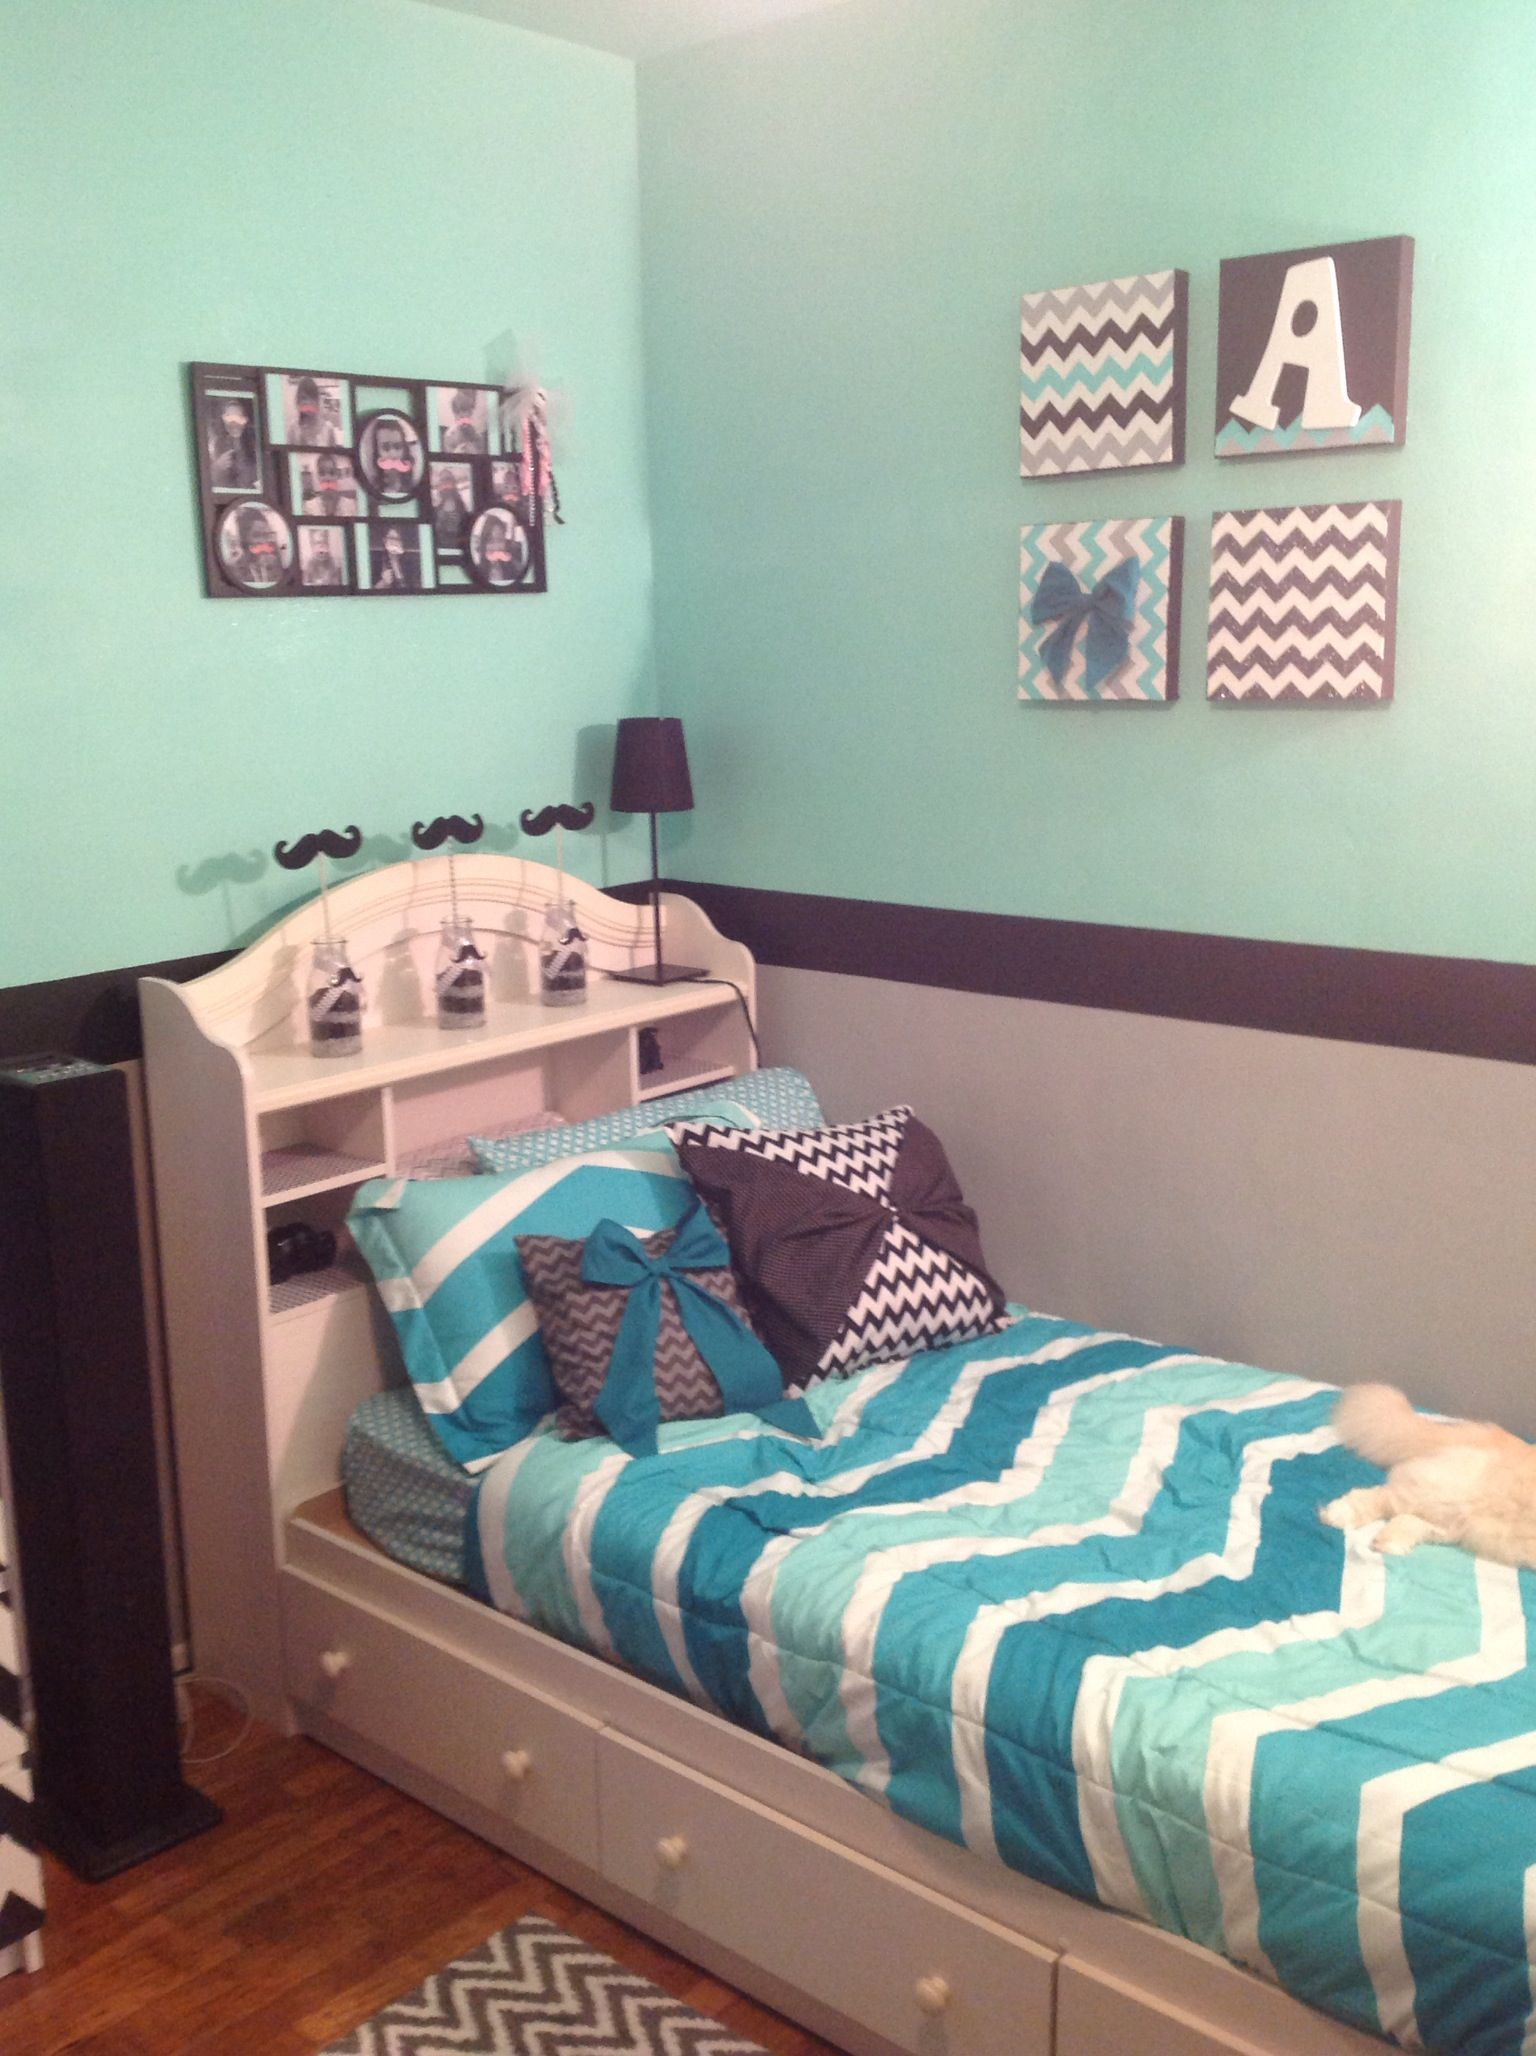 Pin By Vicki Orion On Cuteness Mint Green Bedroom Girls Bedroom Themes Black Chevron Room